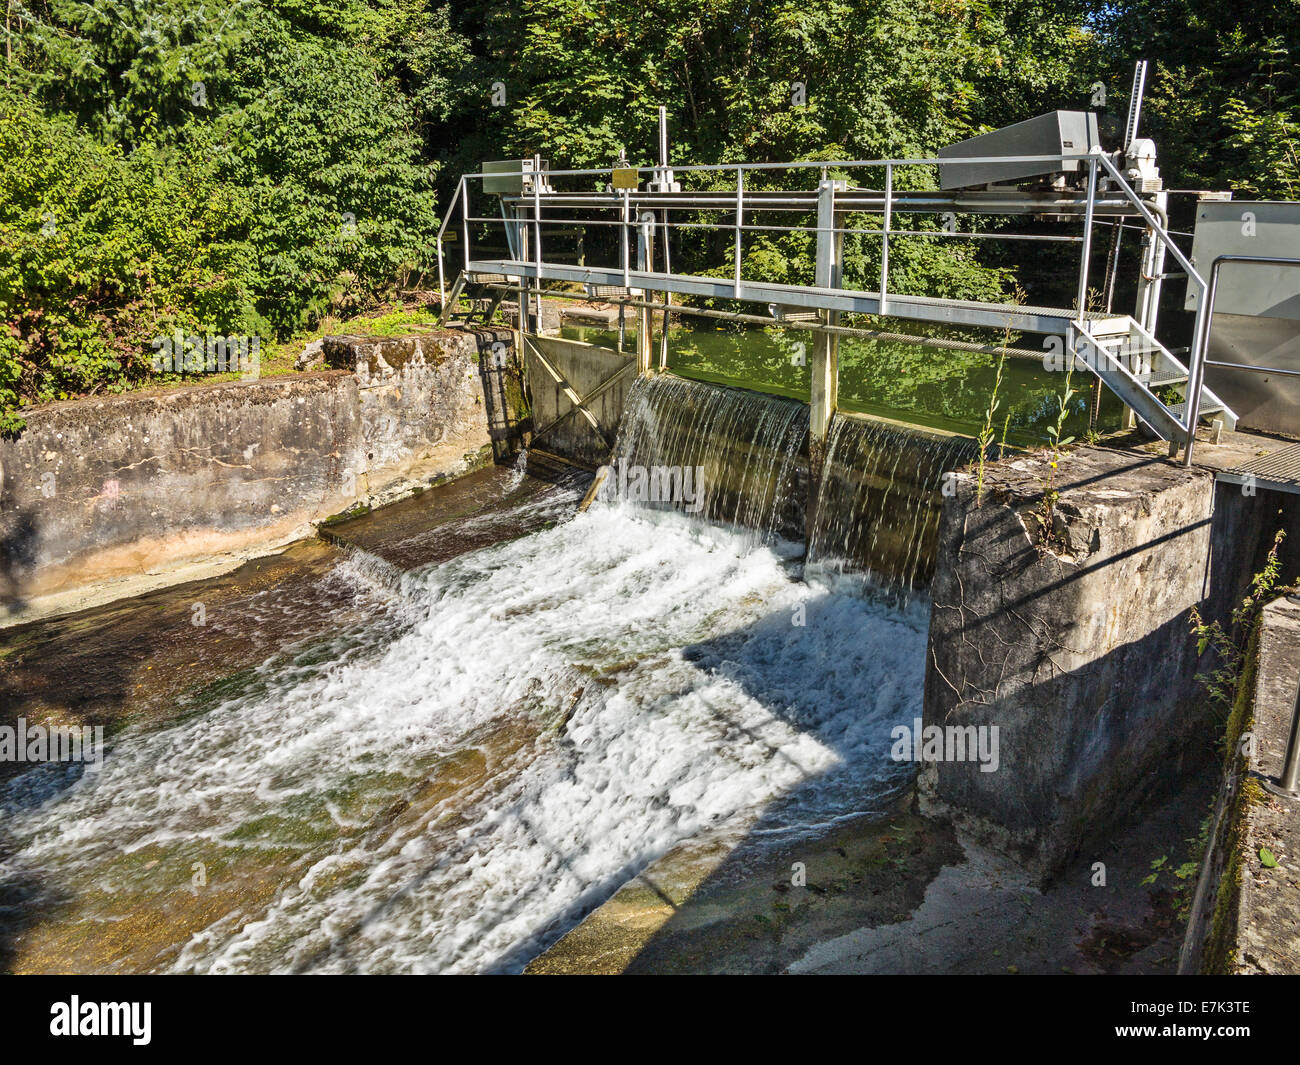 Mini Hydroelectric Dam : Small hydroelectric dam on a river in switzerland stock